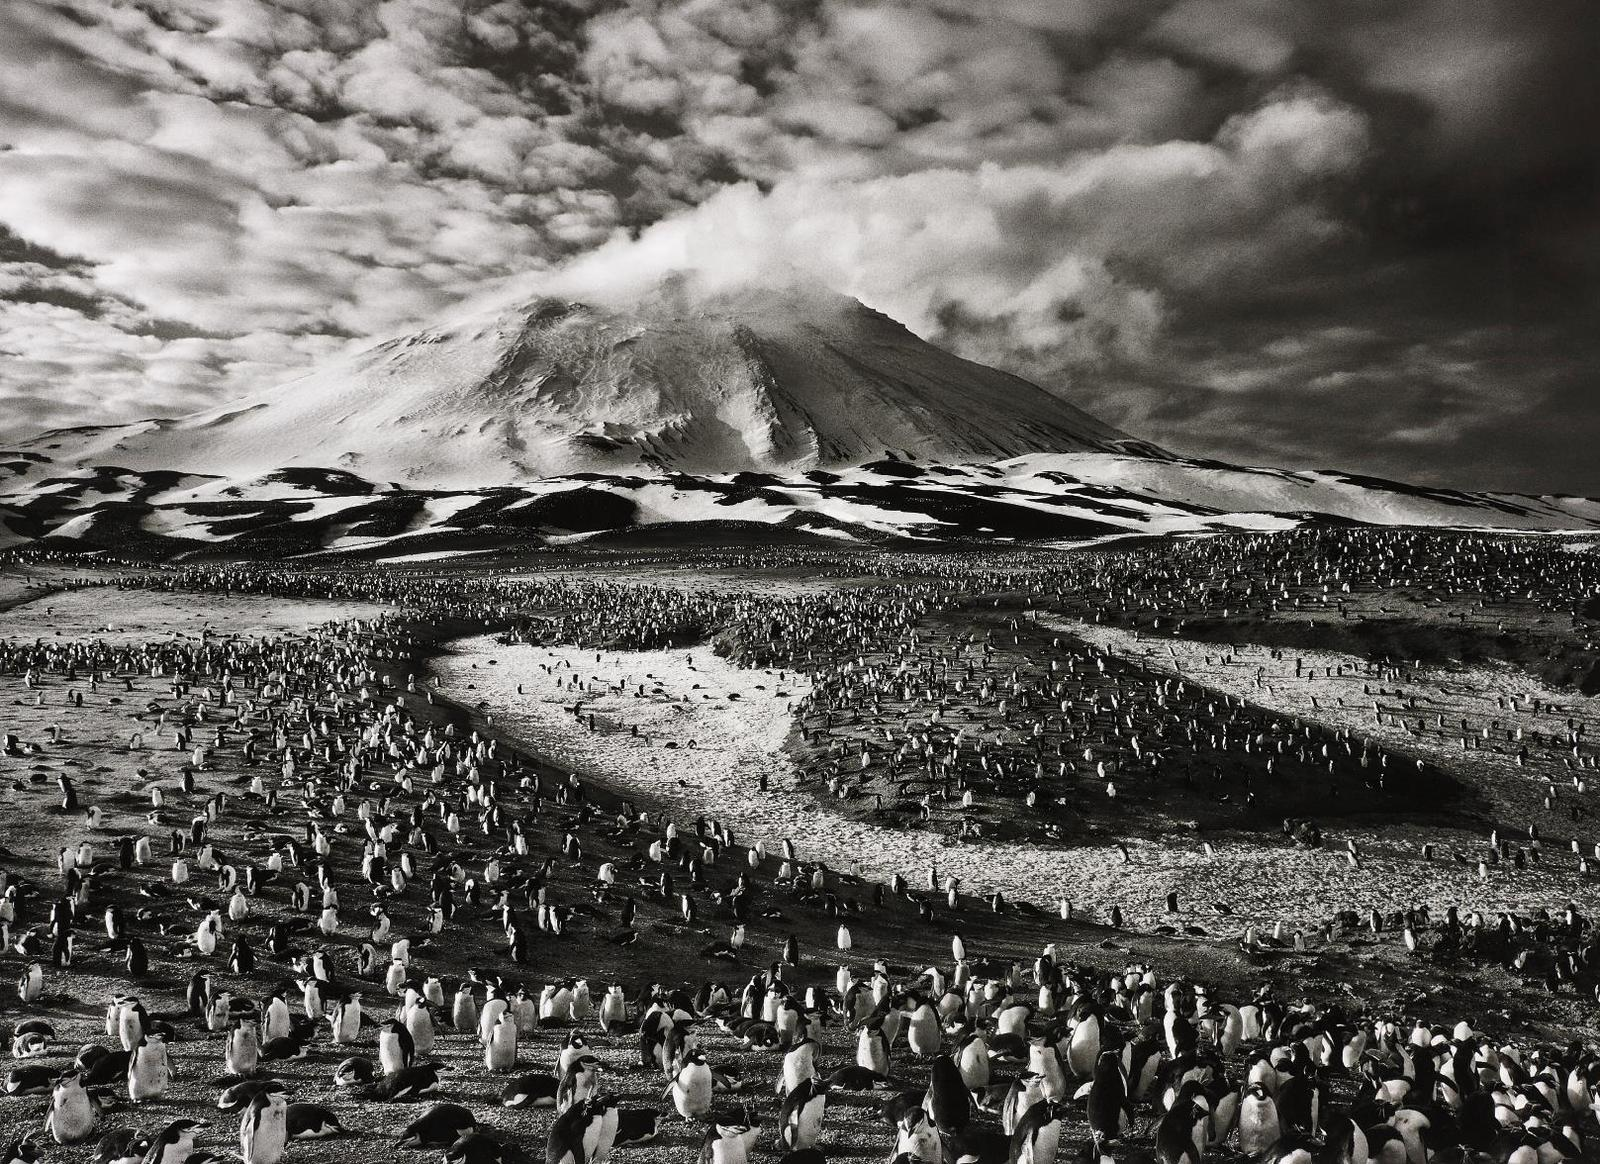 Sebastiao Salgado-Macaroni Penguins In Zavodovski Island, The Sandwich Islands-2009